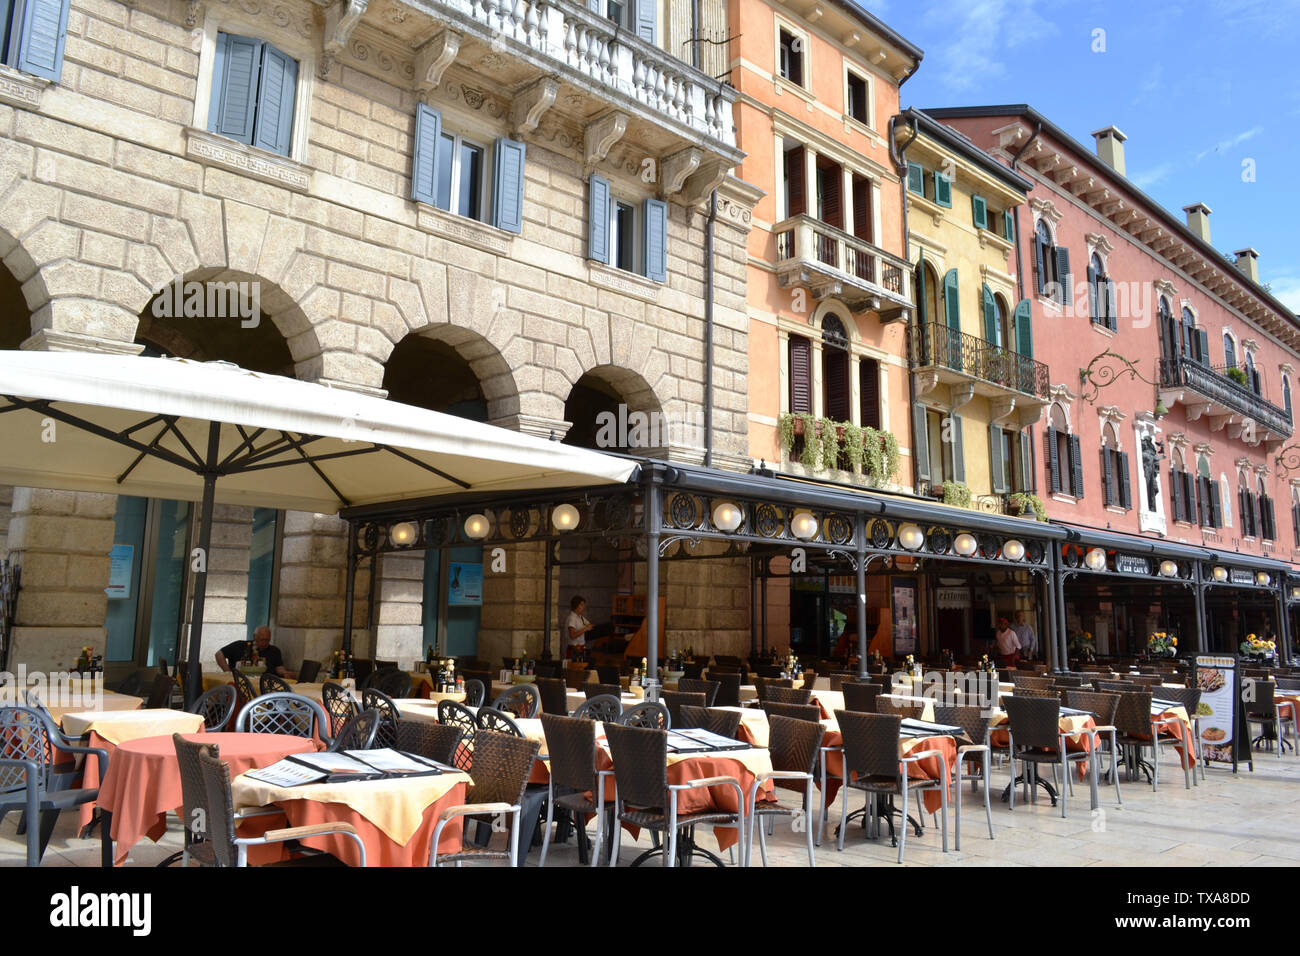 Verona/Italy - May 9, 2015: Restaurants and cafes of the Piazza delle Erbe in Verona. Stock Photo